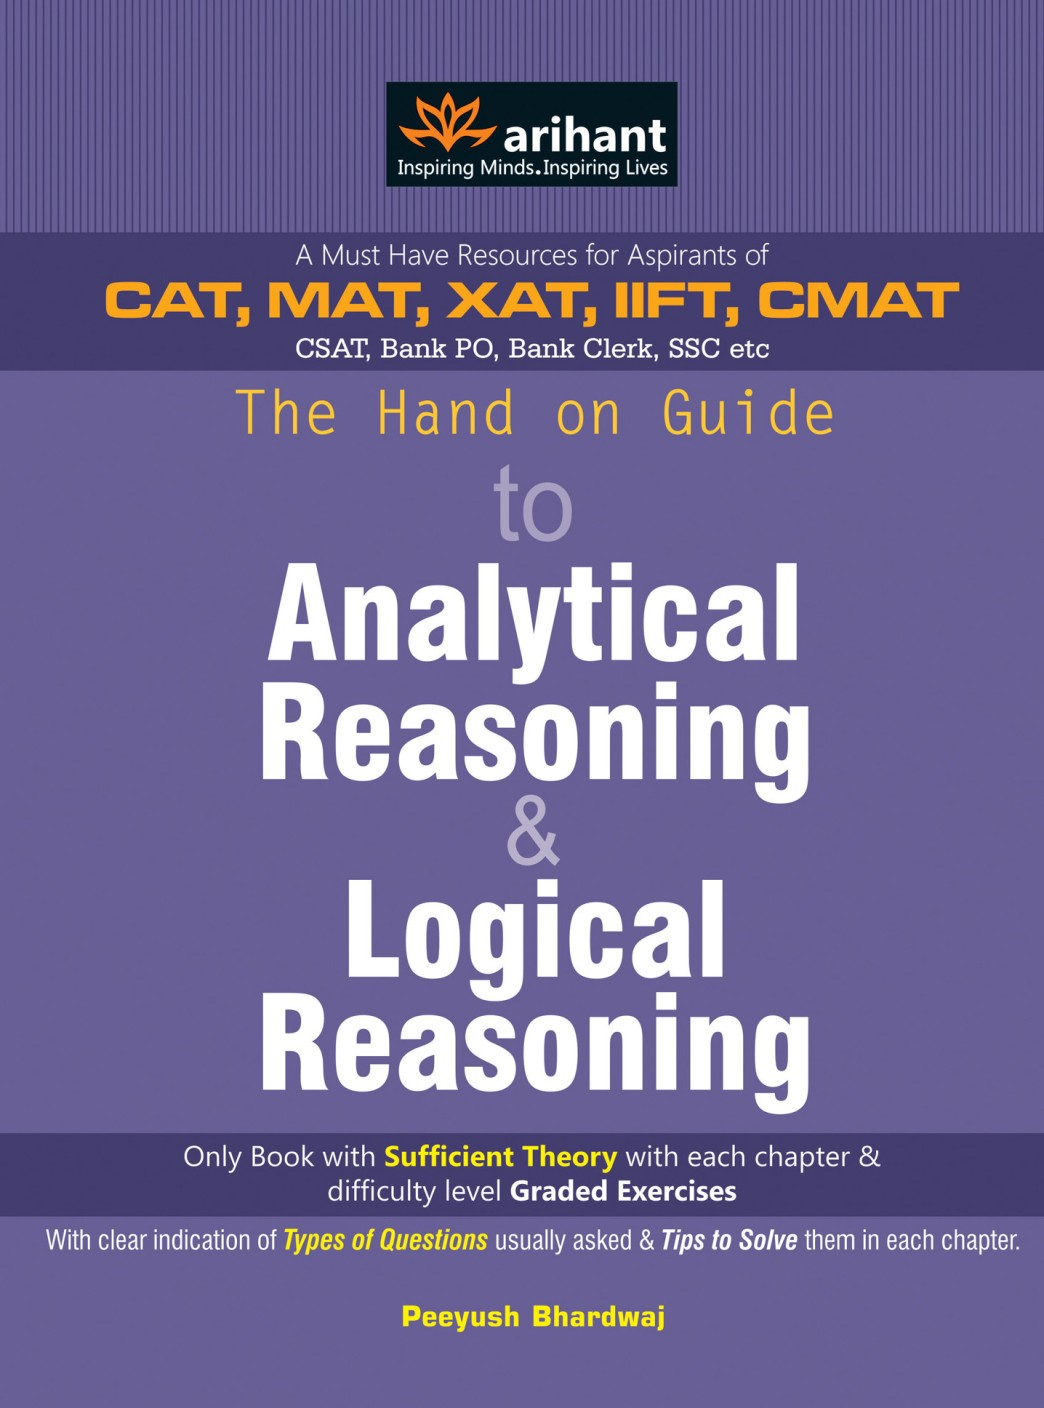 Best Book For Analytical Reasoning For Cat